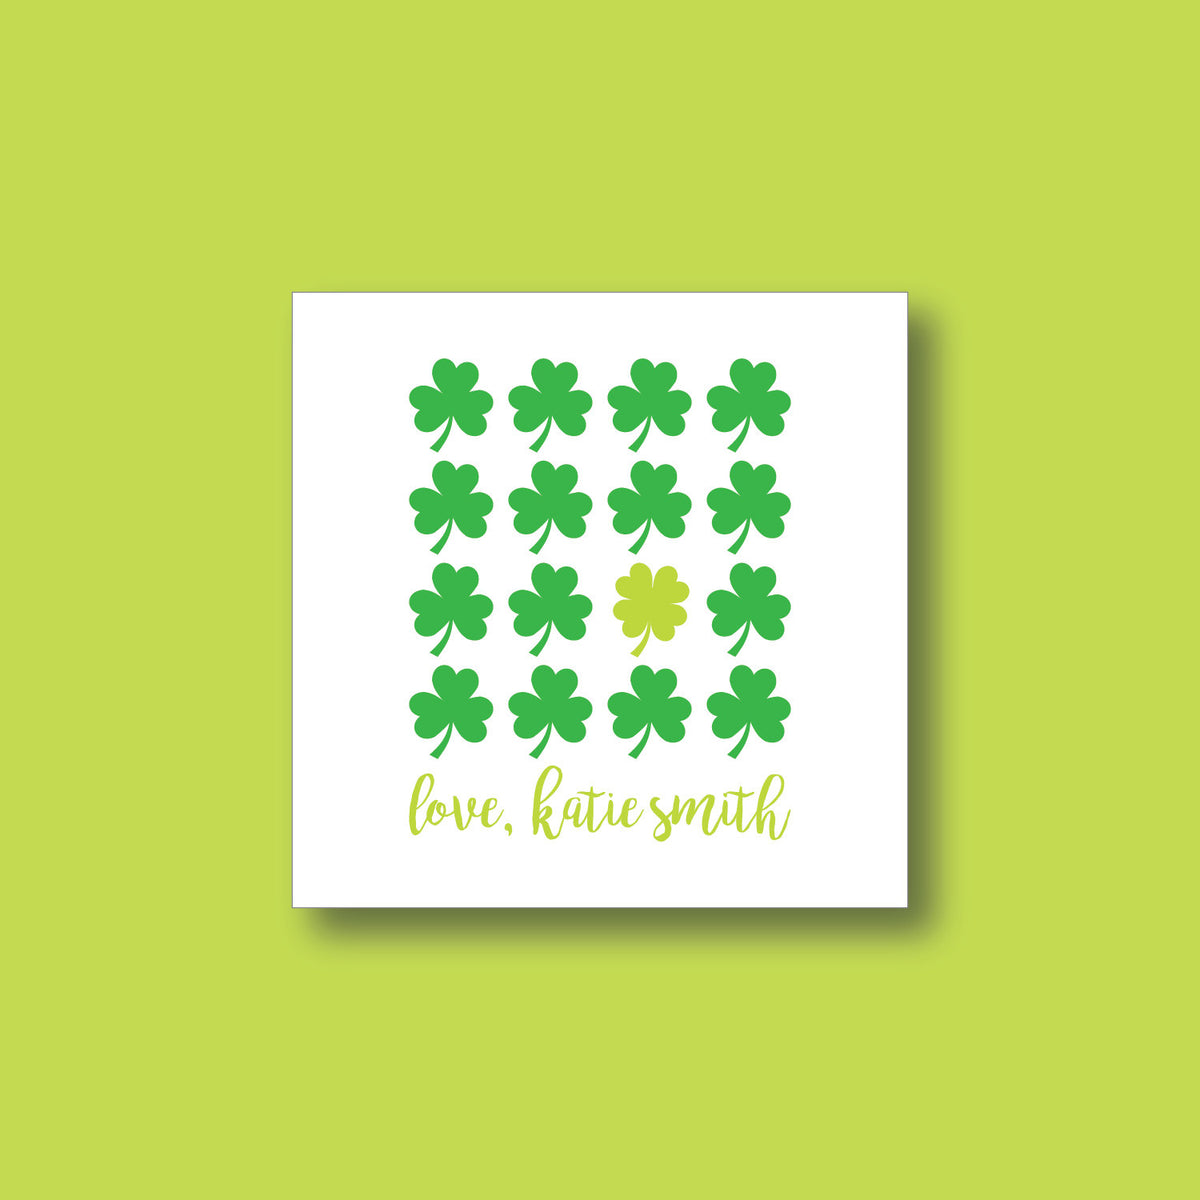 St. Patrick's Day Sticker, Custom Personalized St. Patrick's Day Sticker, Shamrock Sticker, Four-Leaf Clover Sticker 032S